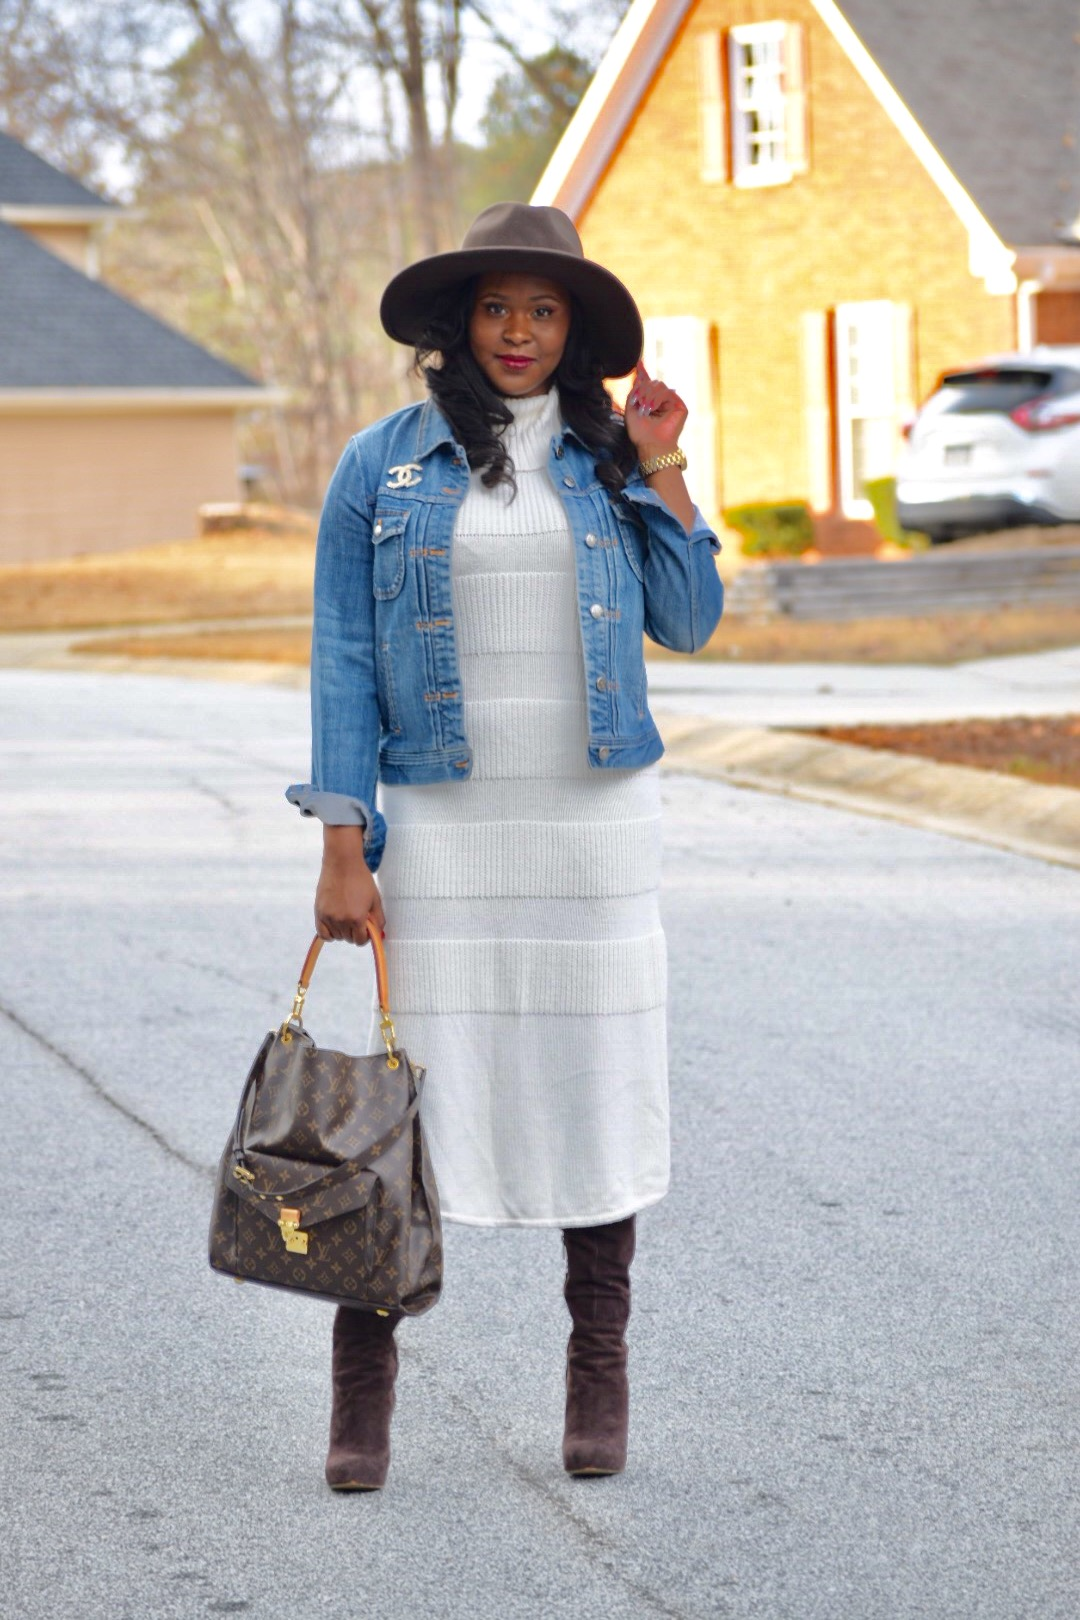 Anthropologie Turtleneck Sweater Dress (purchased last year, similar  here ,  here  &  here ), Sam Edelman Boots (similar  here ), Hat purchased at the Goorin Bros. Hat Shop in Ponce City Market, J Crew Jean Jacket ( here )